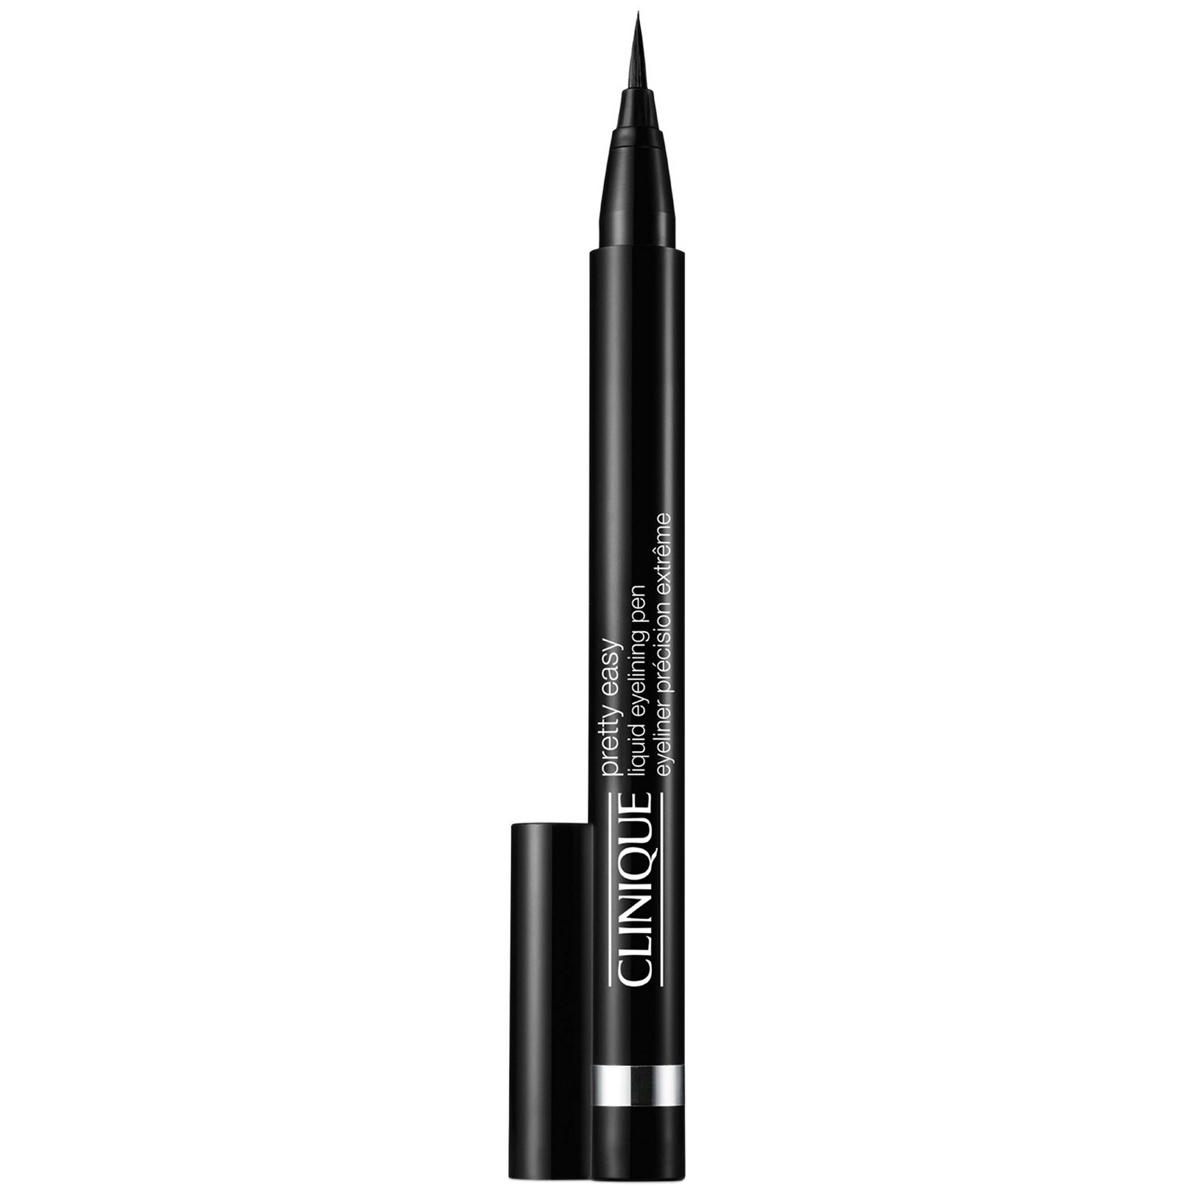 Clinique - Pretty Easy Eyeliner Precision Extrême